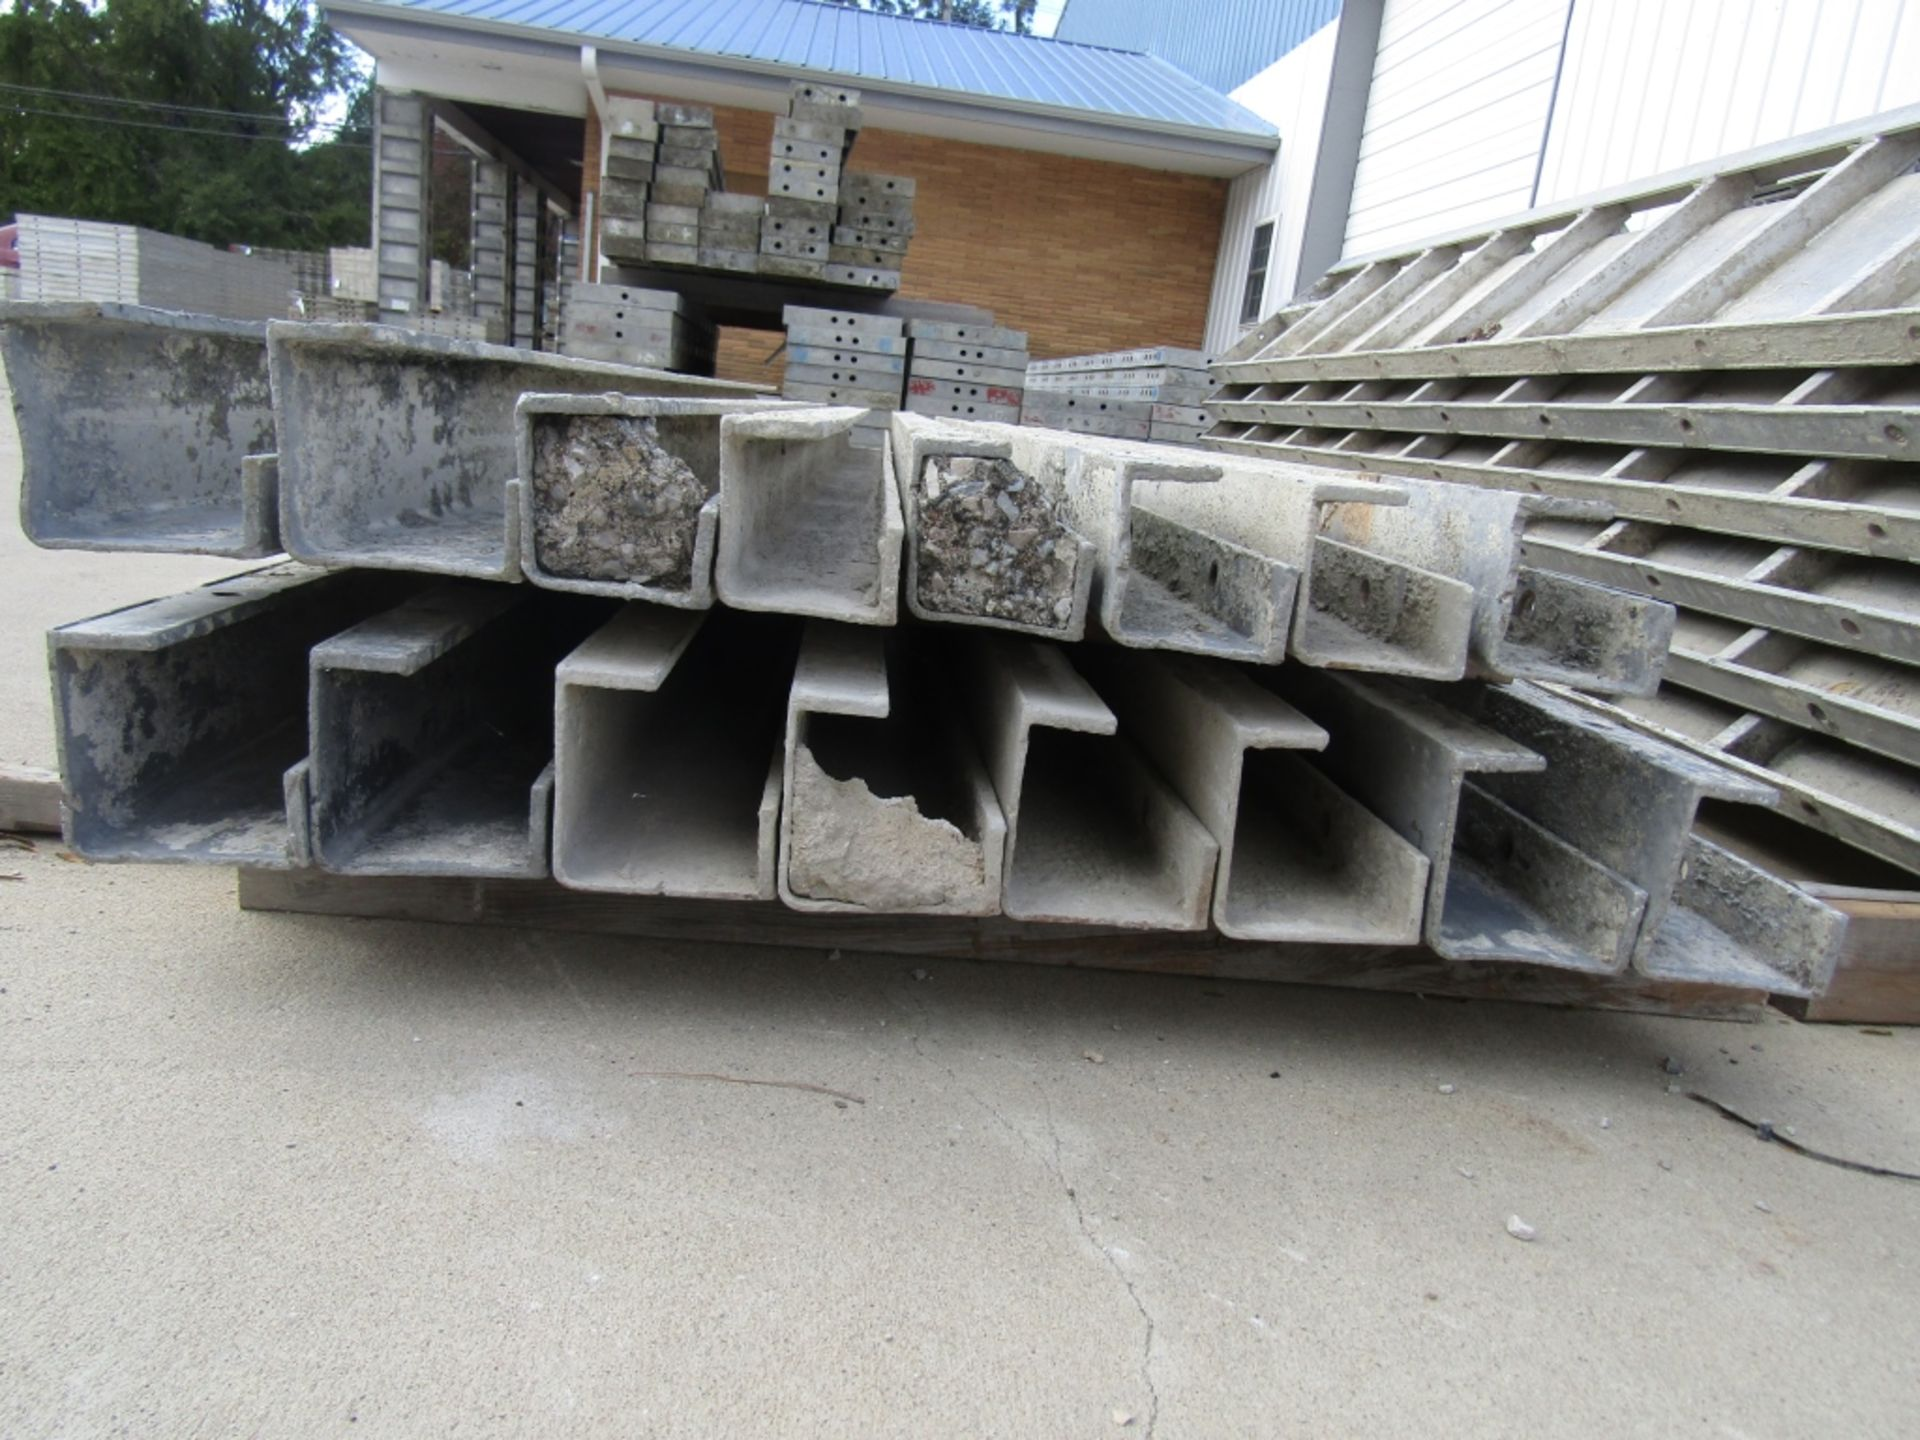 """(10) 5"""" x 5"""" x 9' Durand Concrete Forms, Inside Corners, Smooth 6-12 Hole Pattern, Full - Image 2 of 2"""